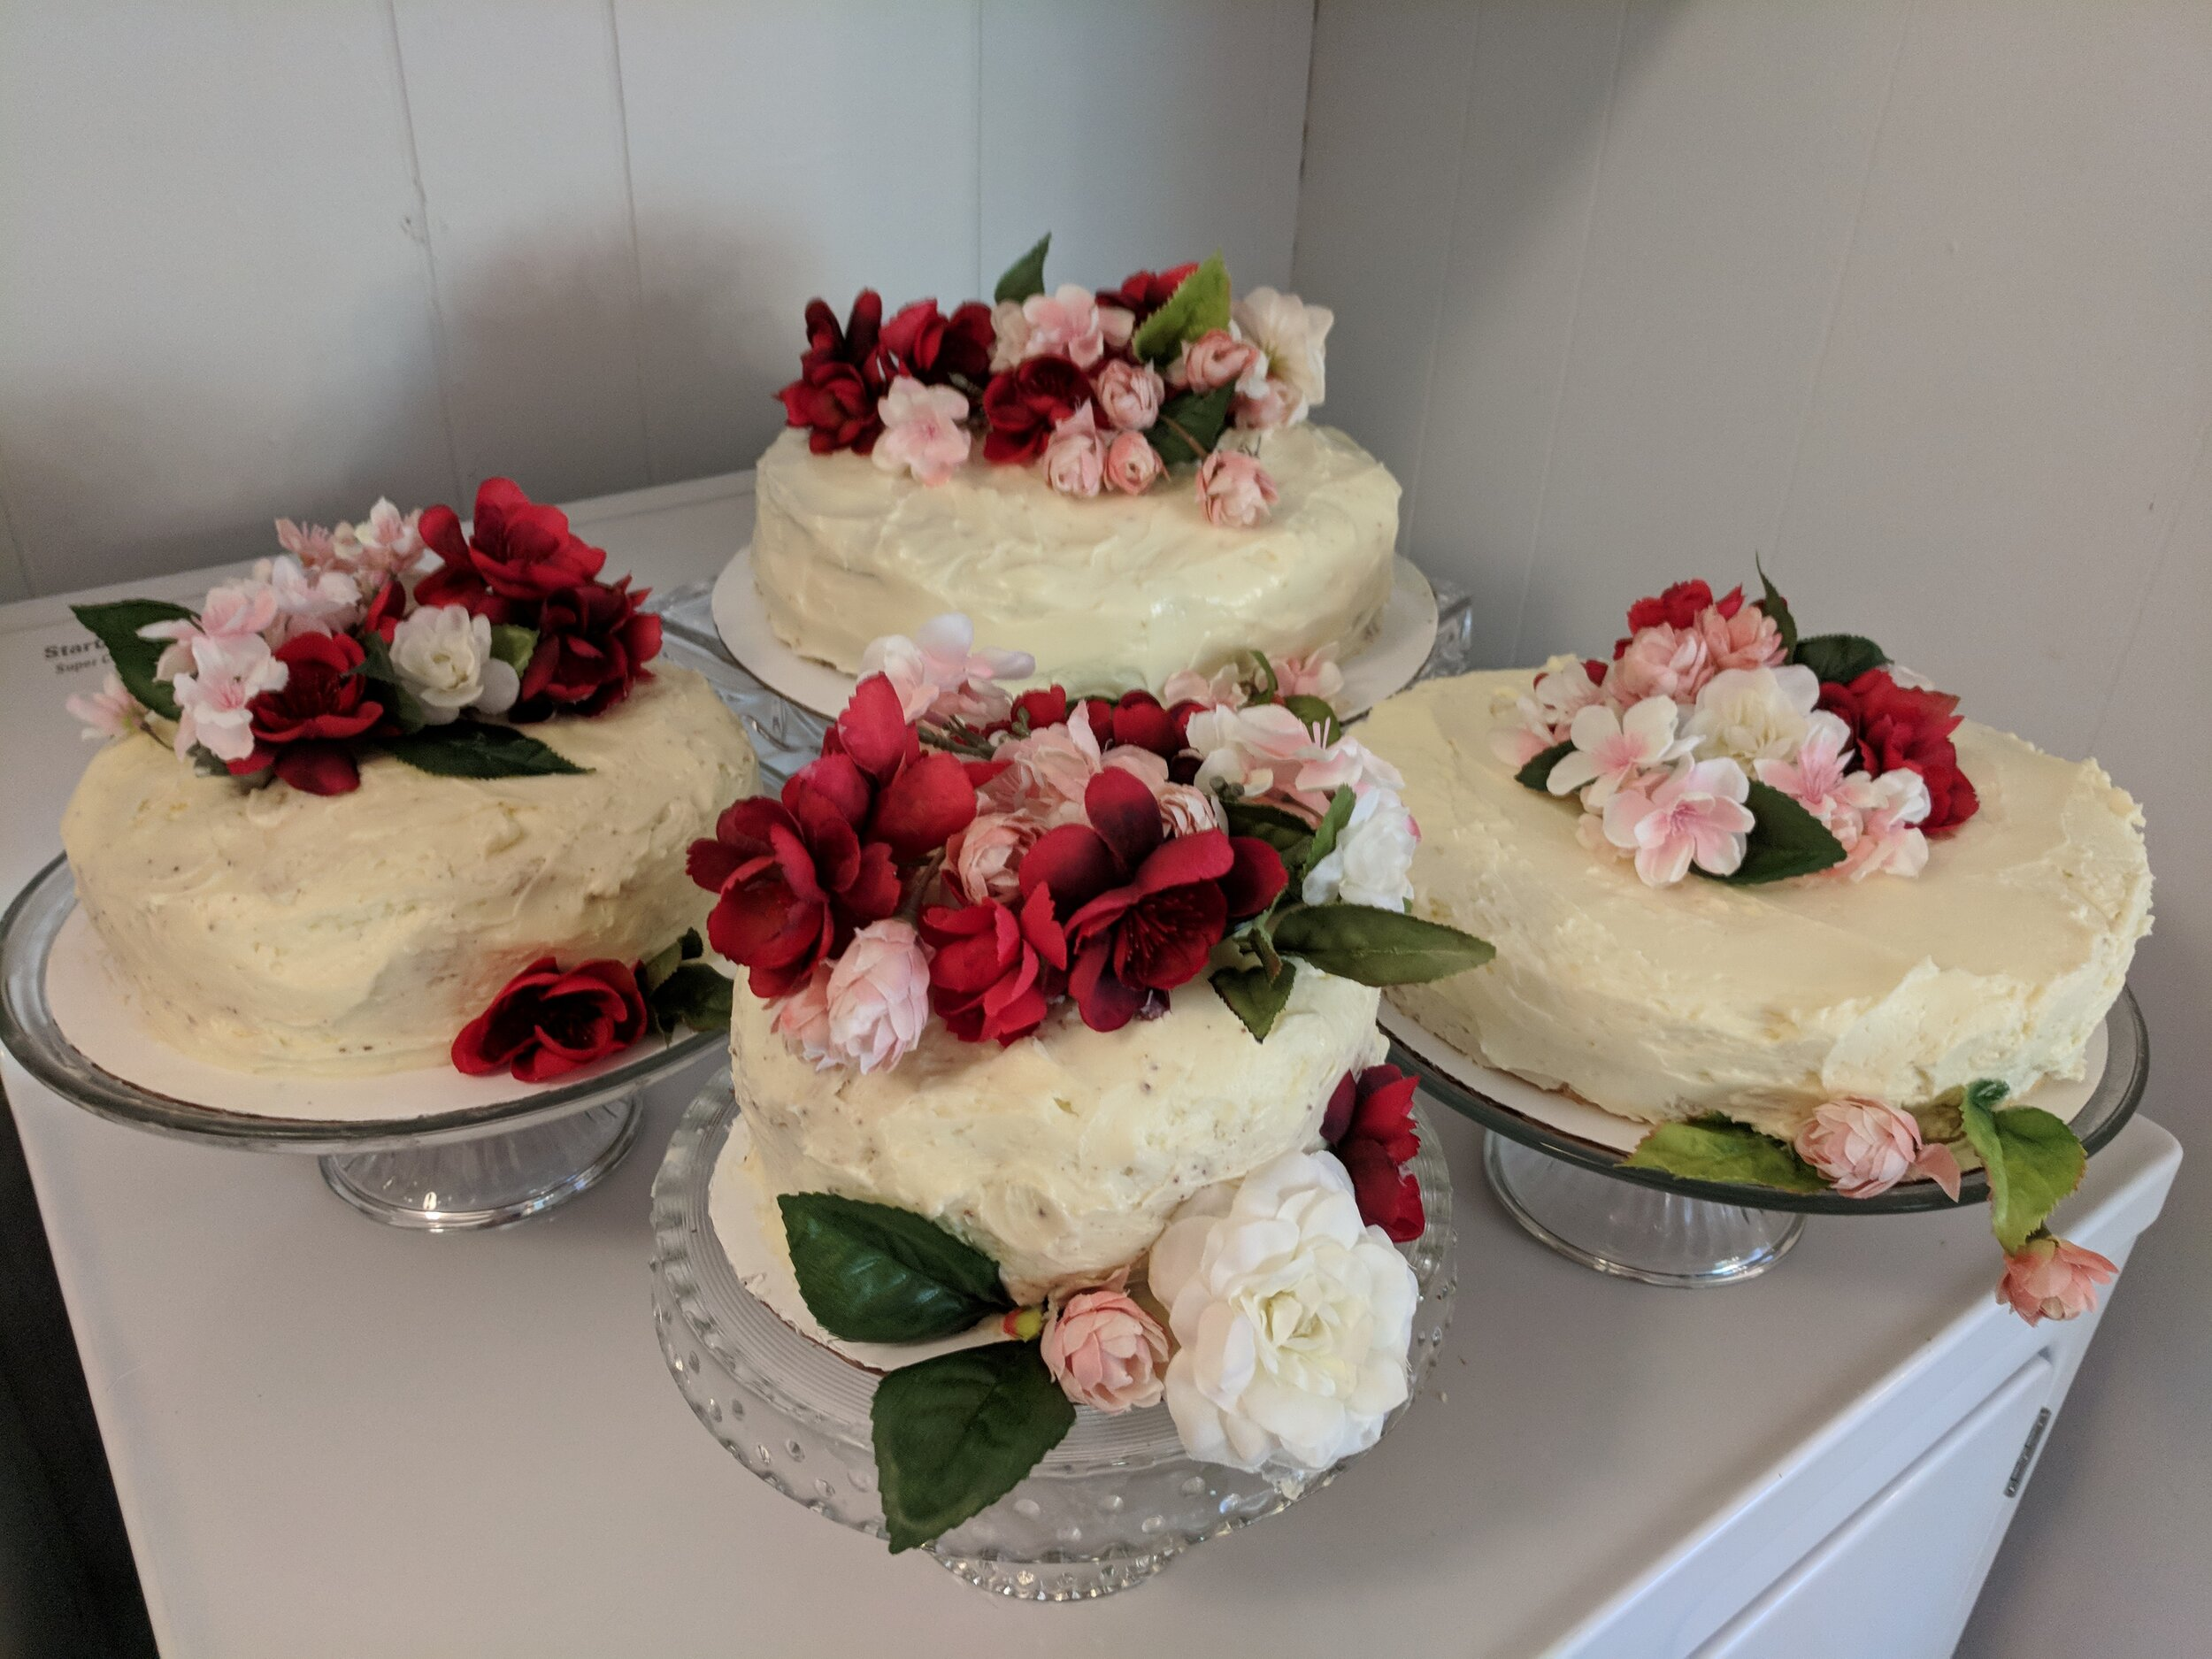 Rounded out the month on a sweet note - Dave and I made the wedding cakes. The dryer-top display was only temporary, I promise!